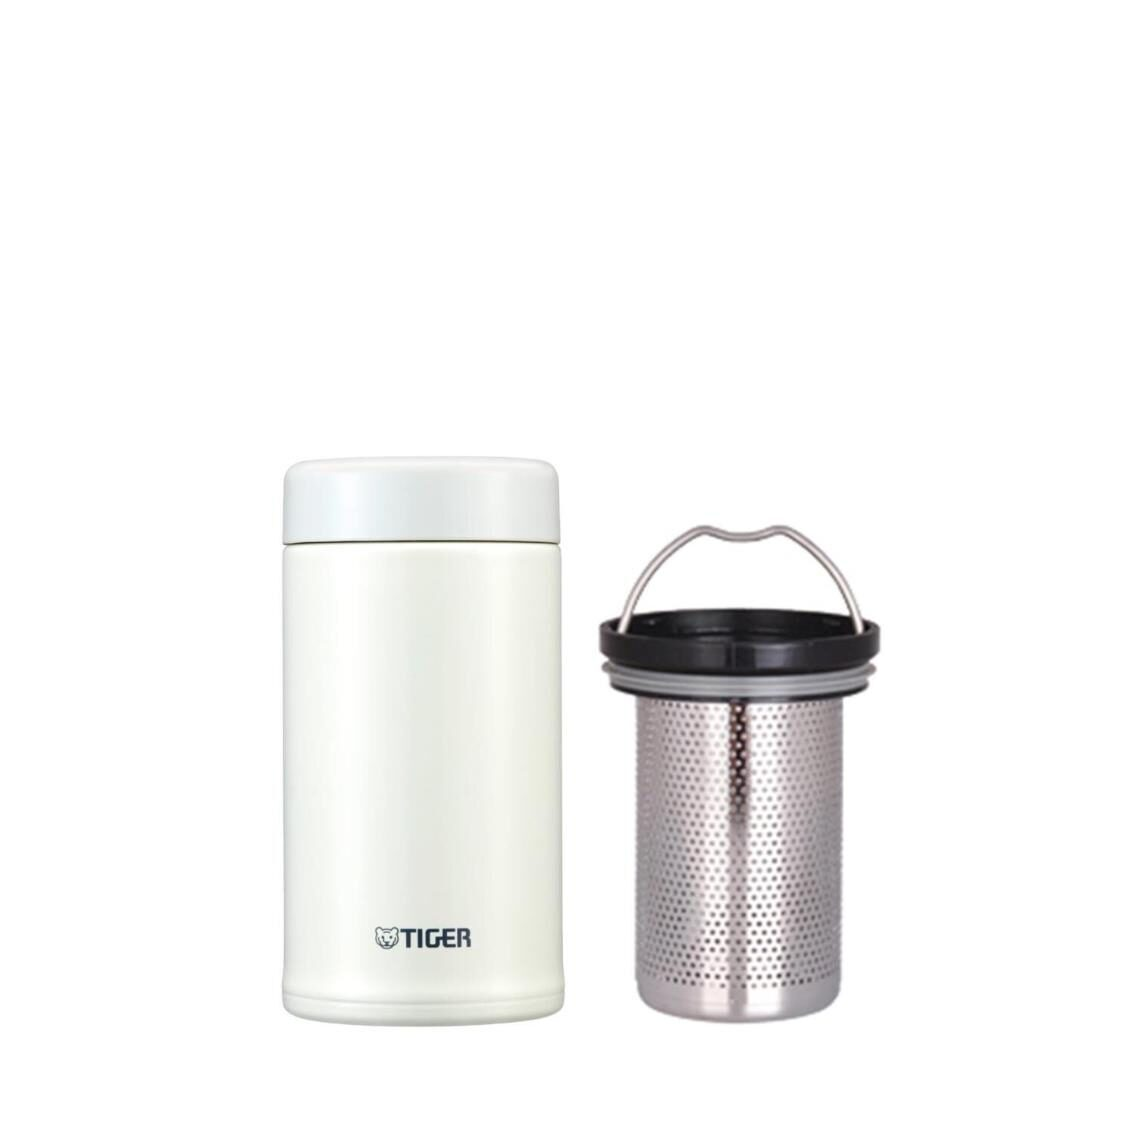 Tiger 360ml Stainless Steel Mug with Tea Strainer - White